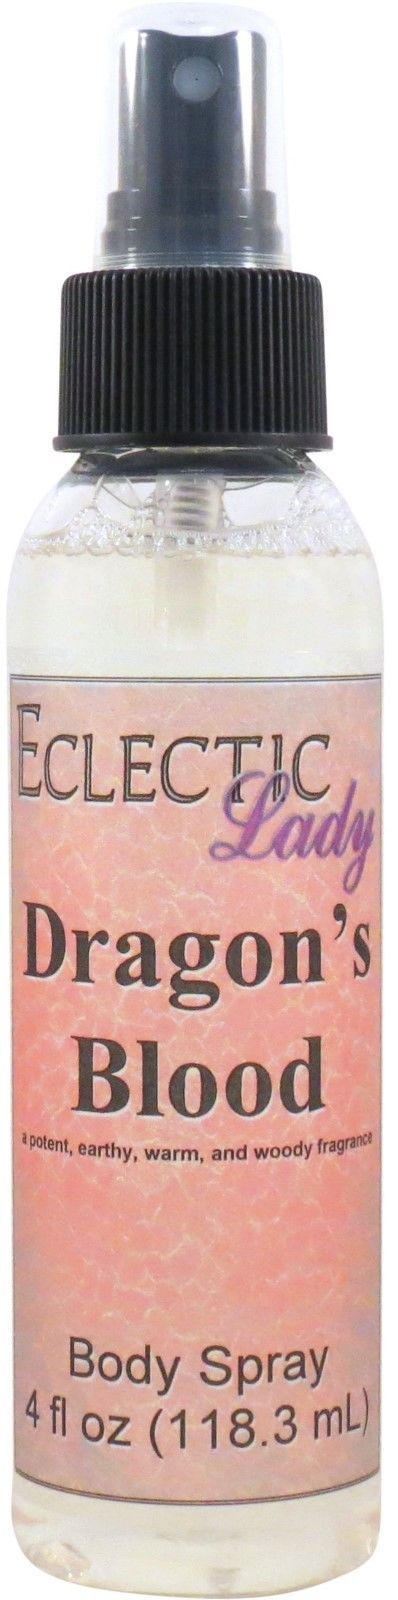 Dragon's Blood Body Spray, 4 oz, SALE